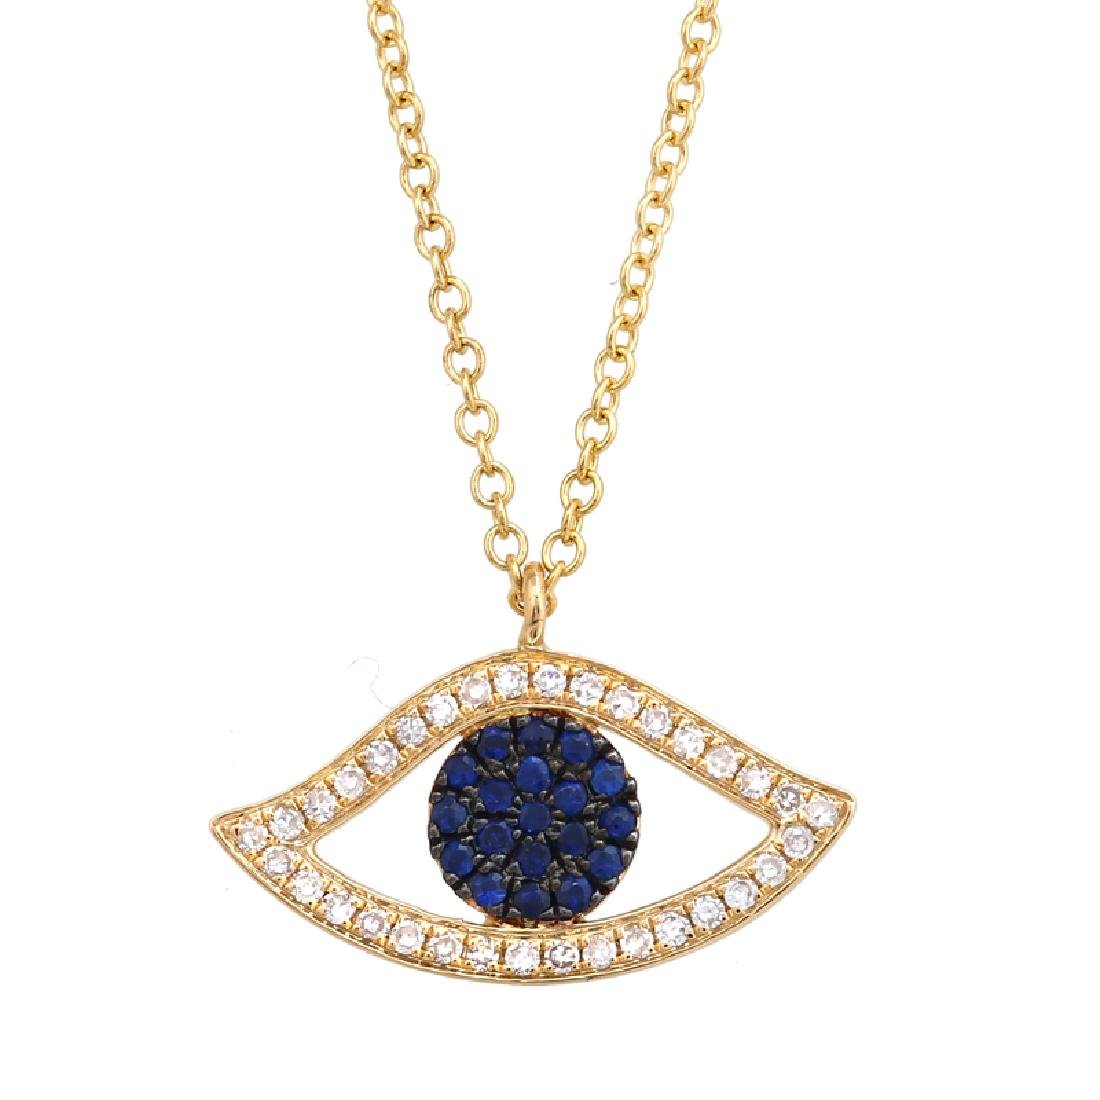 14KT Yellow Gold Gemstone Pendant With Chain